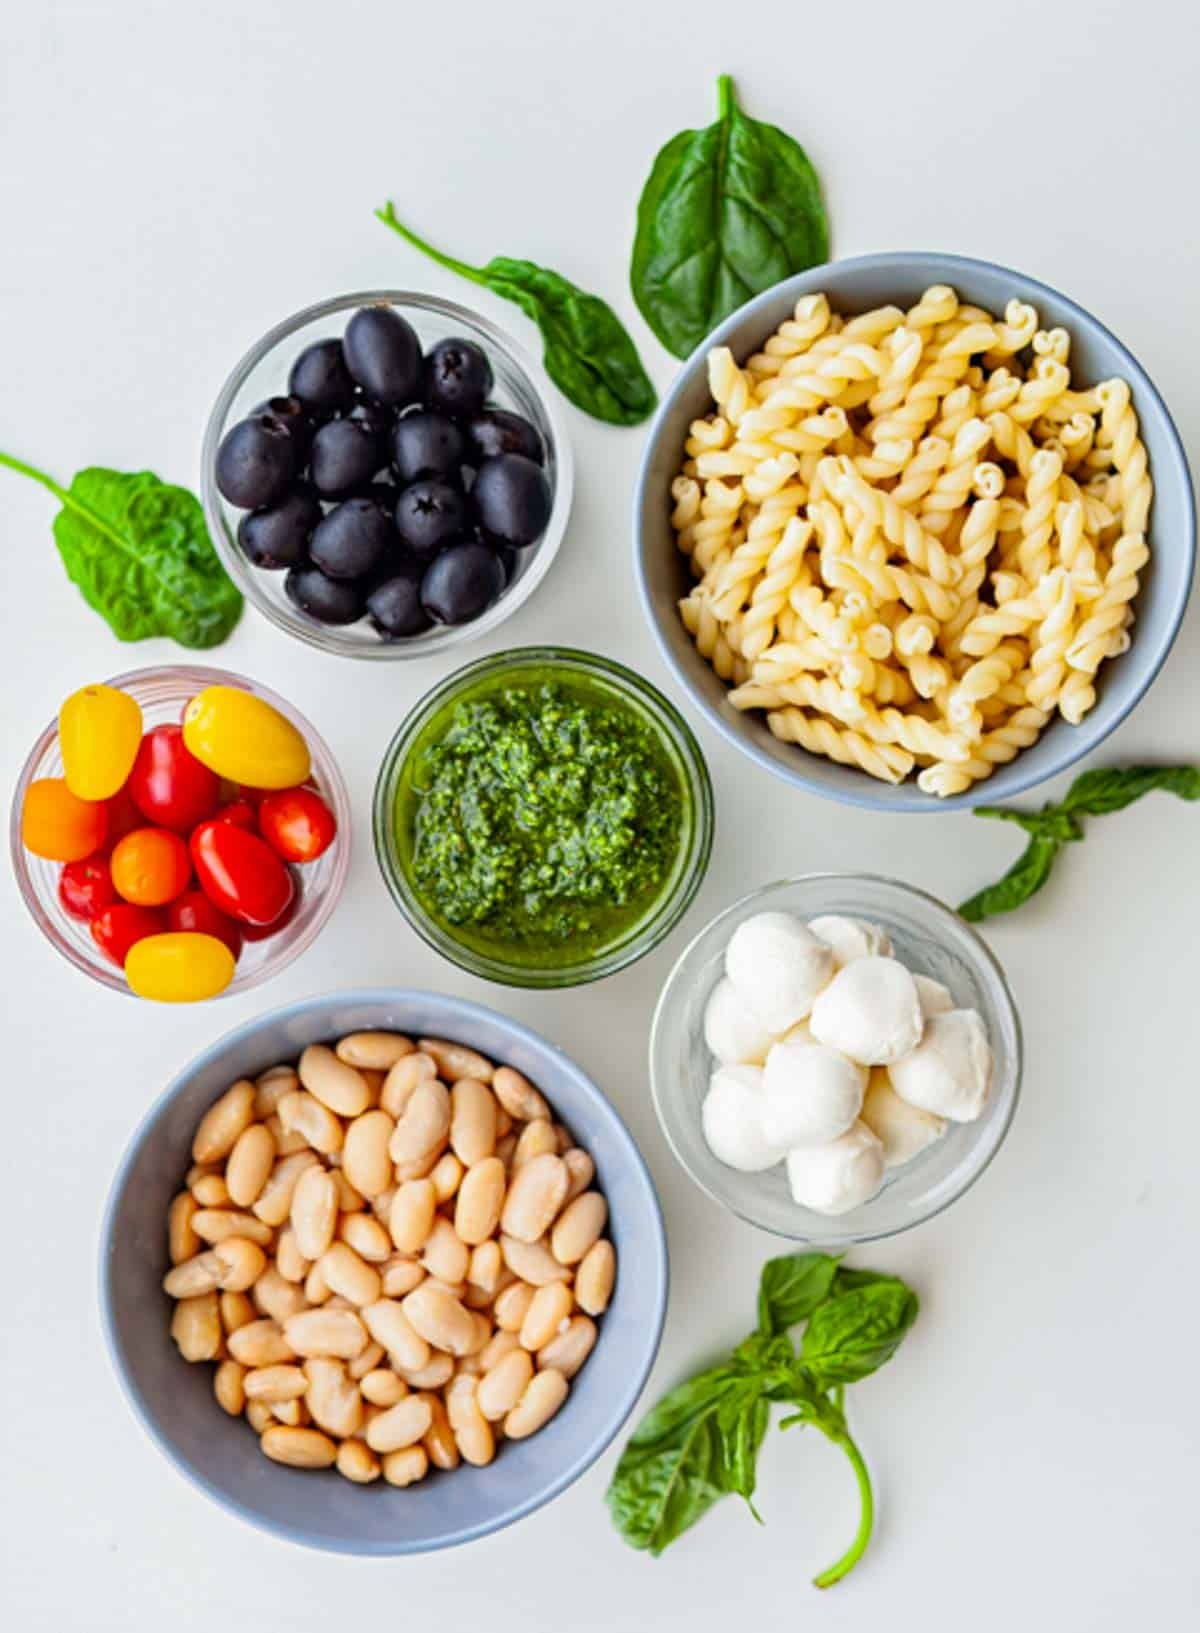 bowls of ingredients for pasta salad, including white beans, olives, pasta, mozzarella and pesto